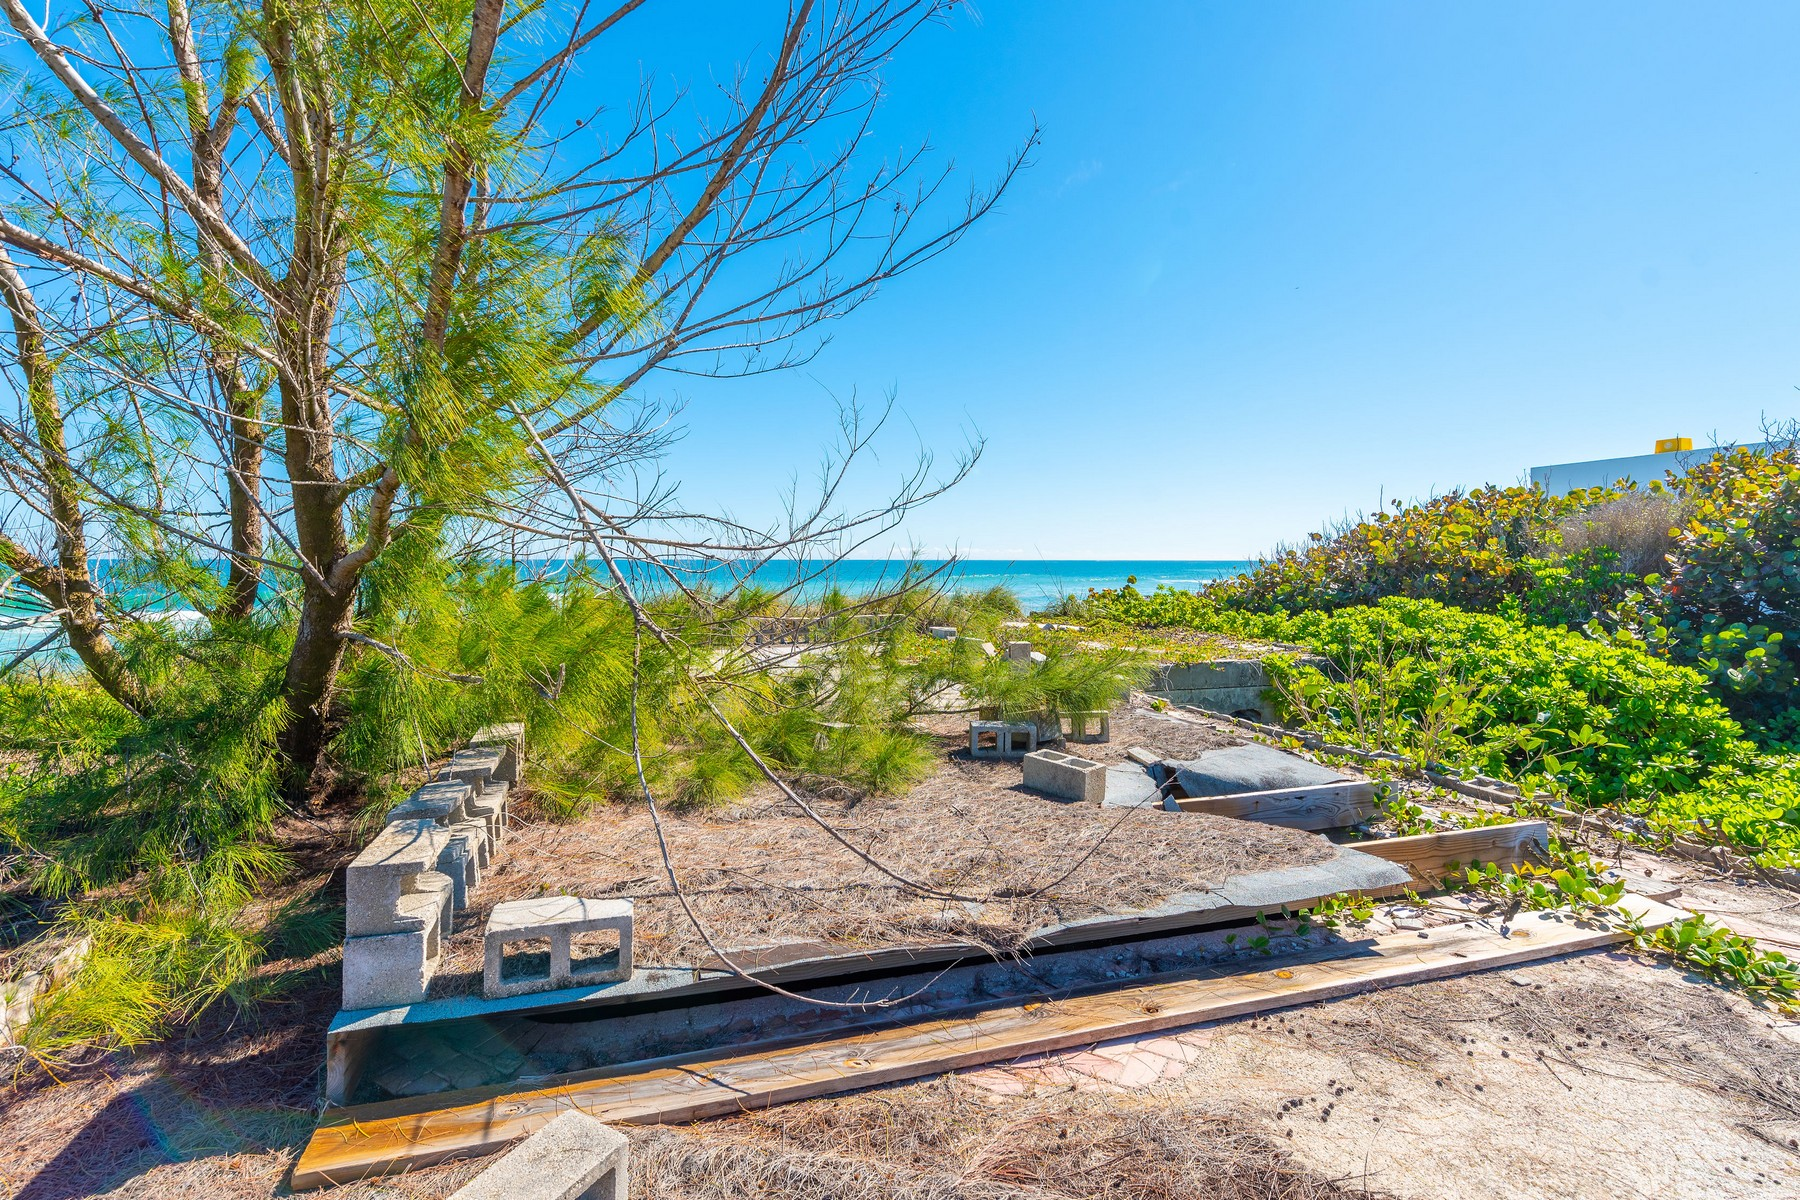 Additional photo for property listing at Exceptional Oceanfront Property with Over an Acre of Private Land. 8035 S Highway A1A Melbourne Beach, Florida 32951 United States